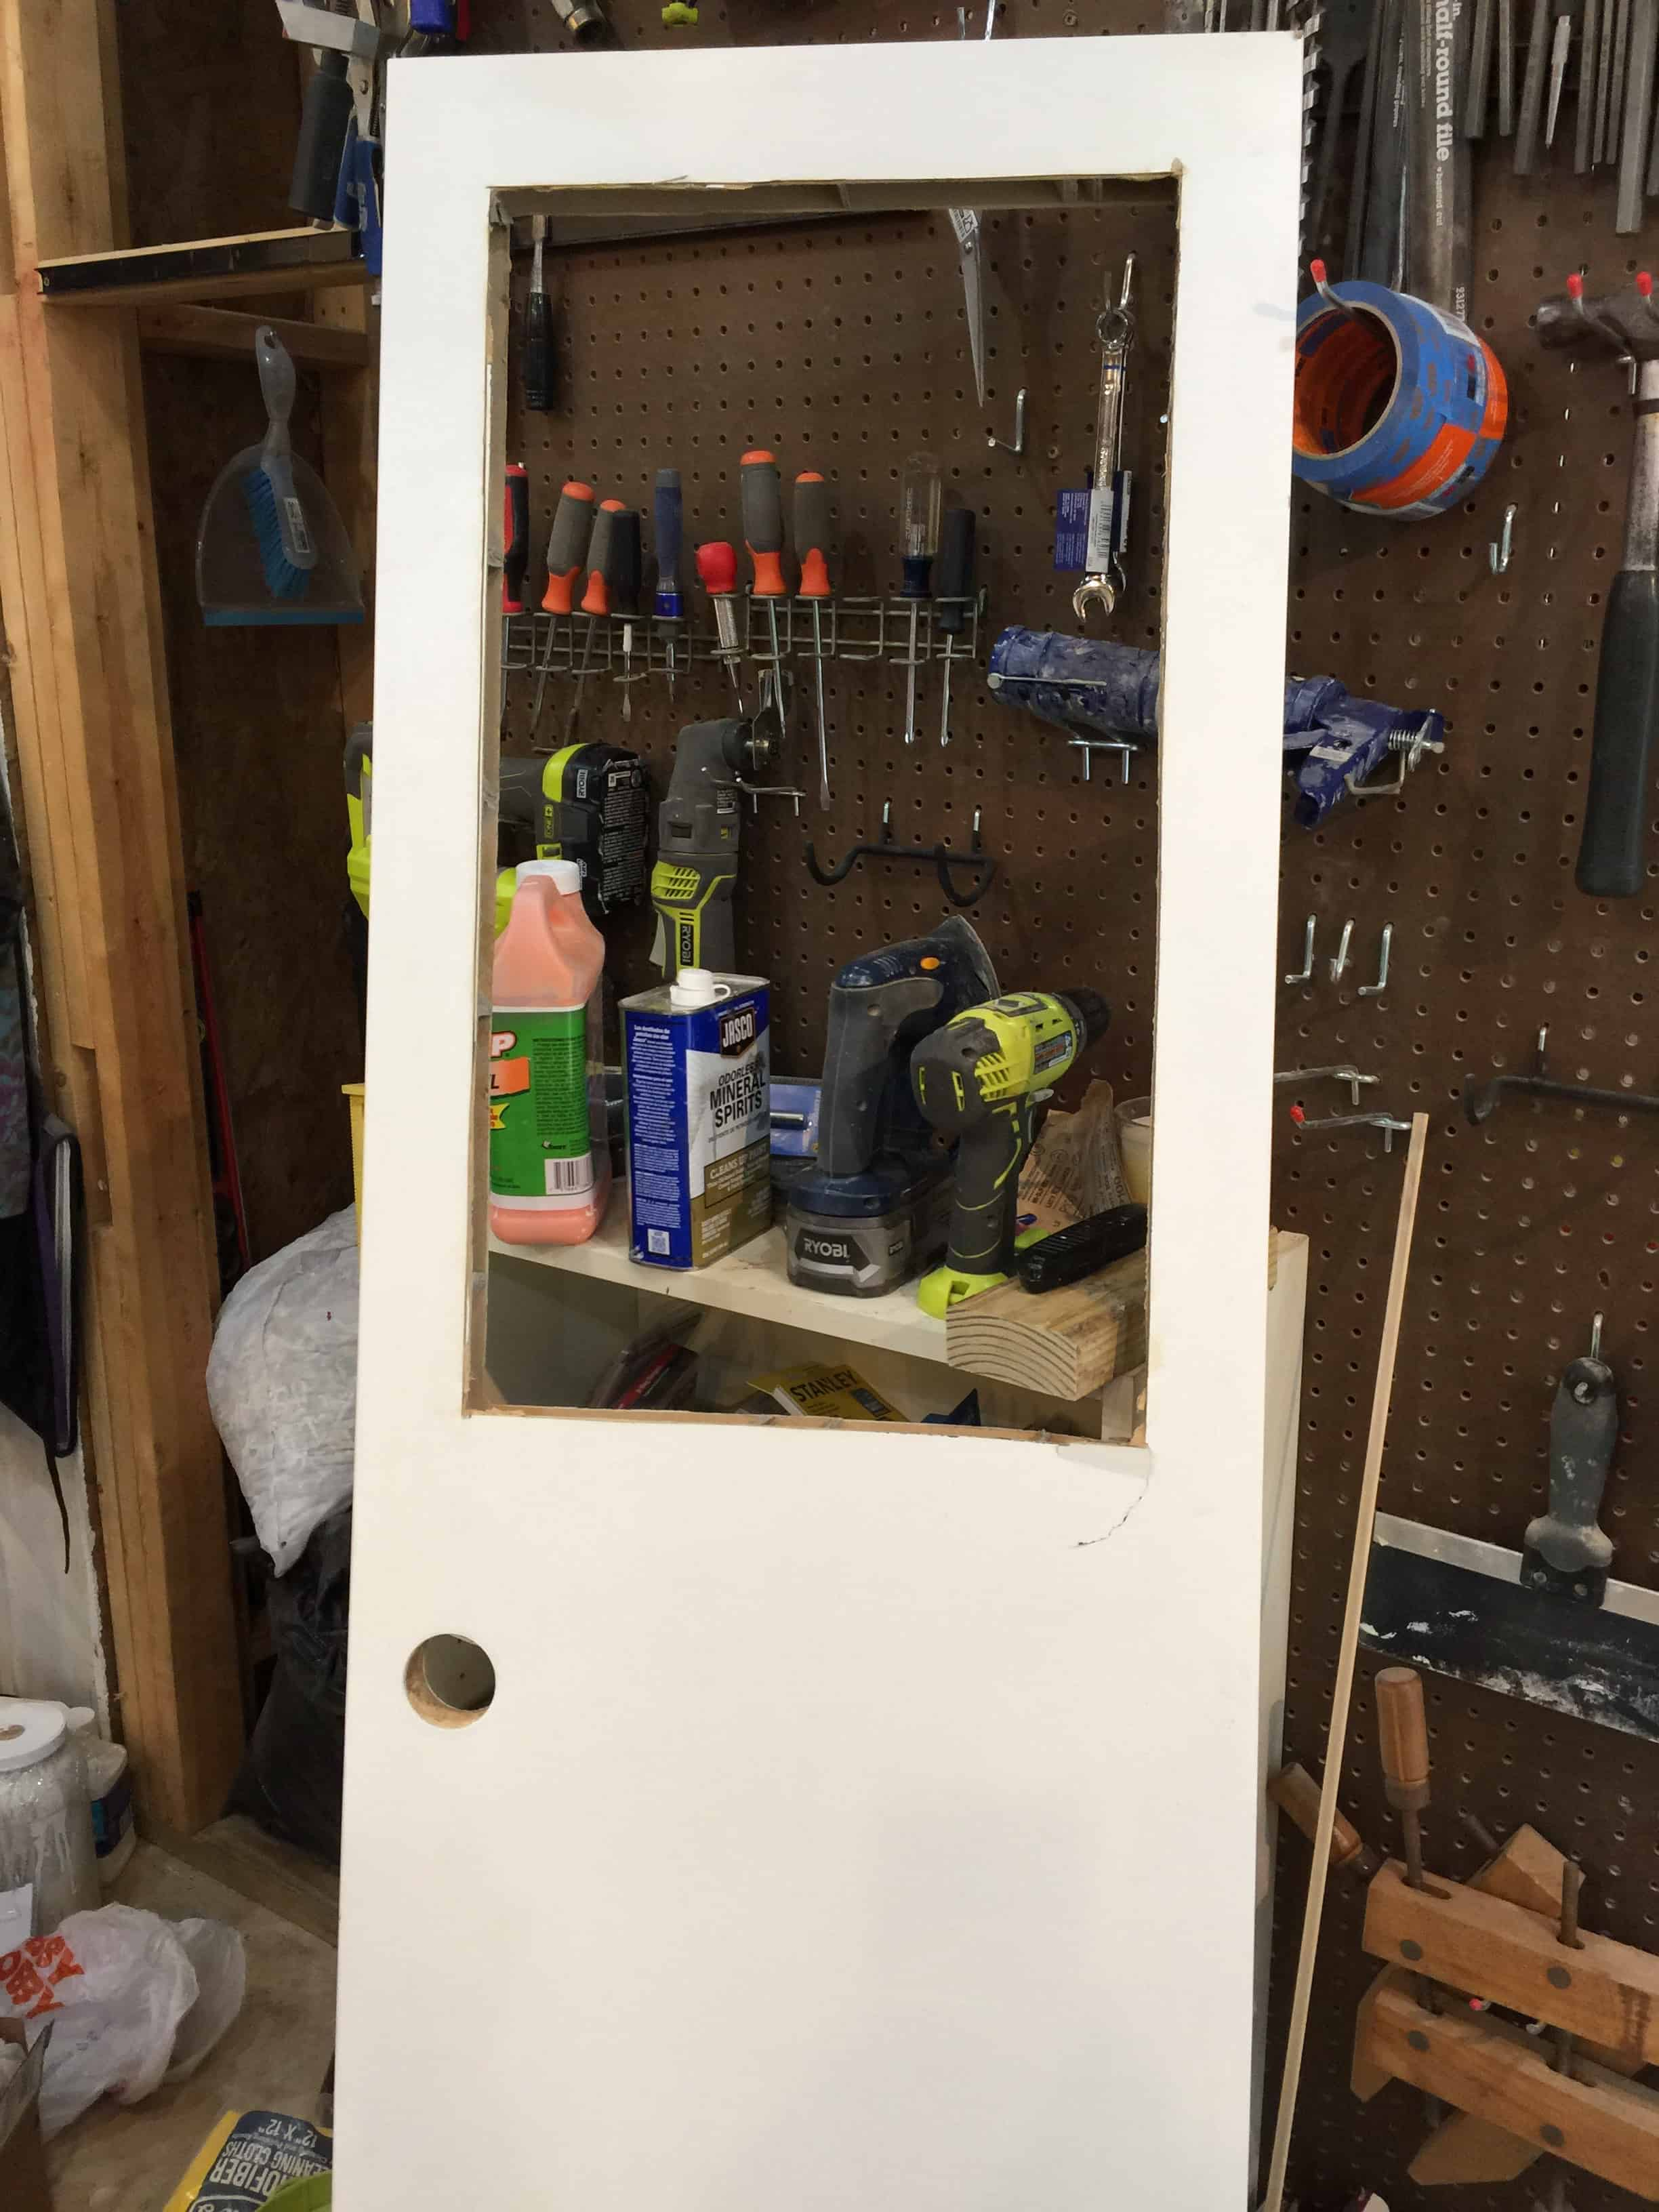 Saved by Scottie rv remodel door build window opening done